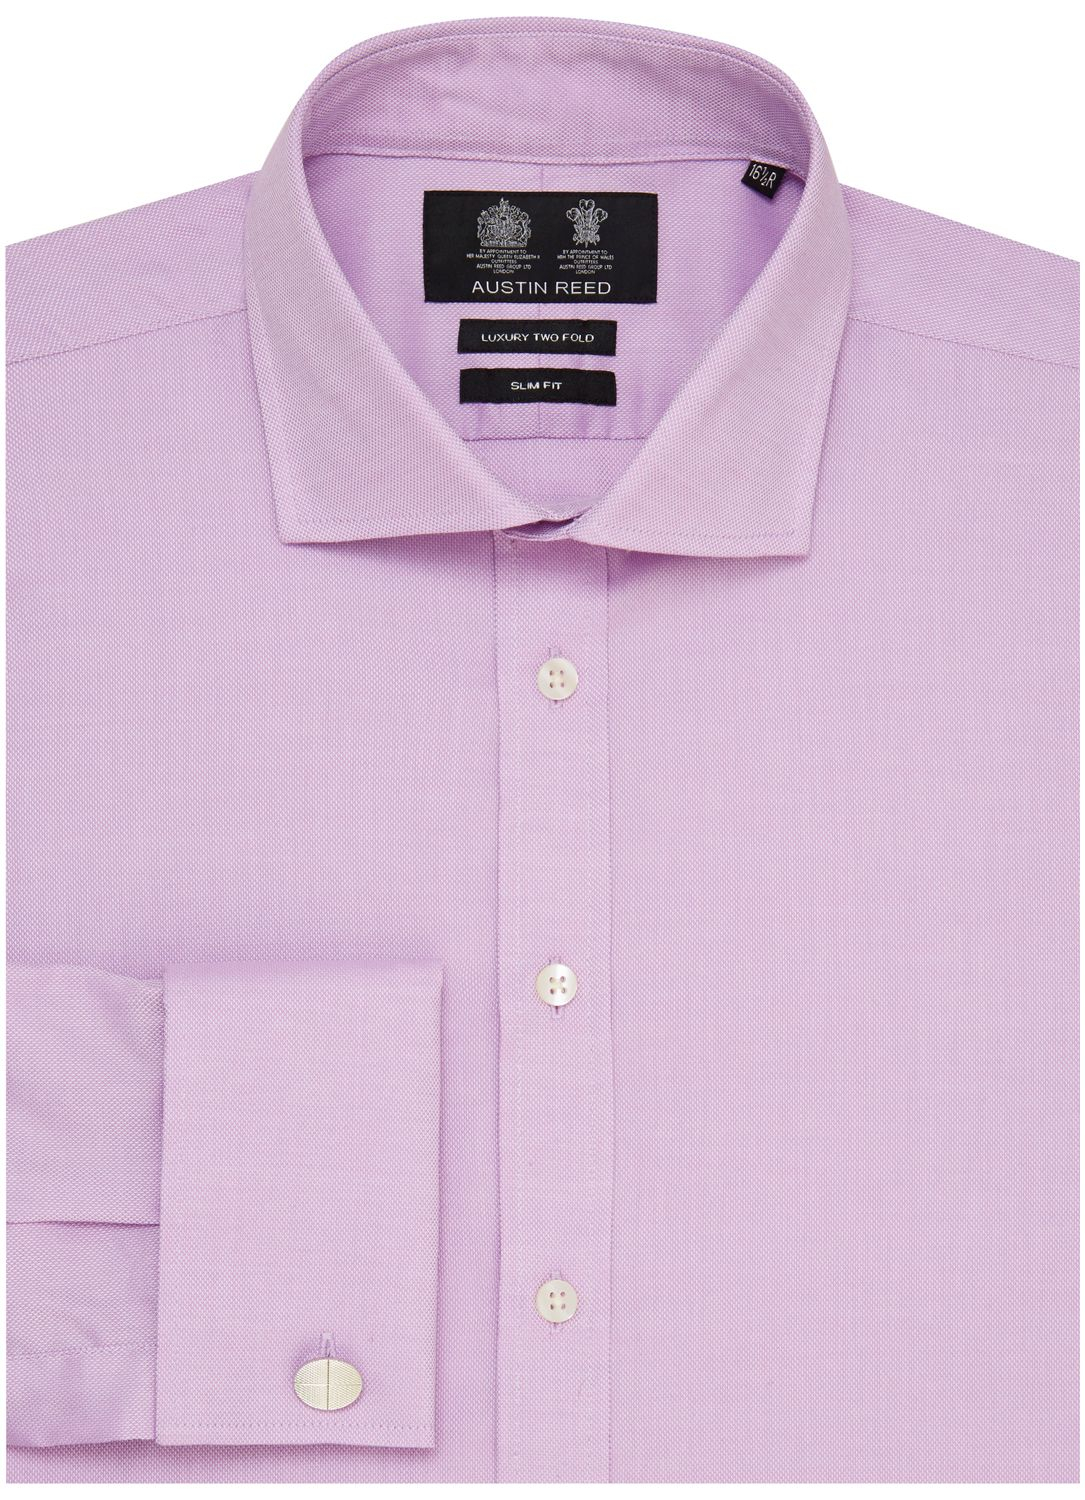 Austin Reed Slim Fit Two Fold Oxford Shirt in Lilac (Purple) for Men